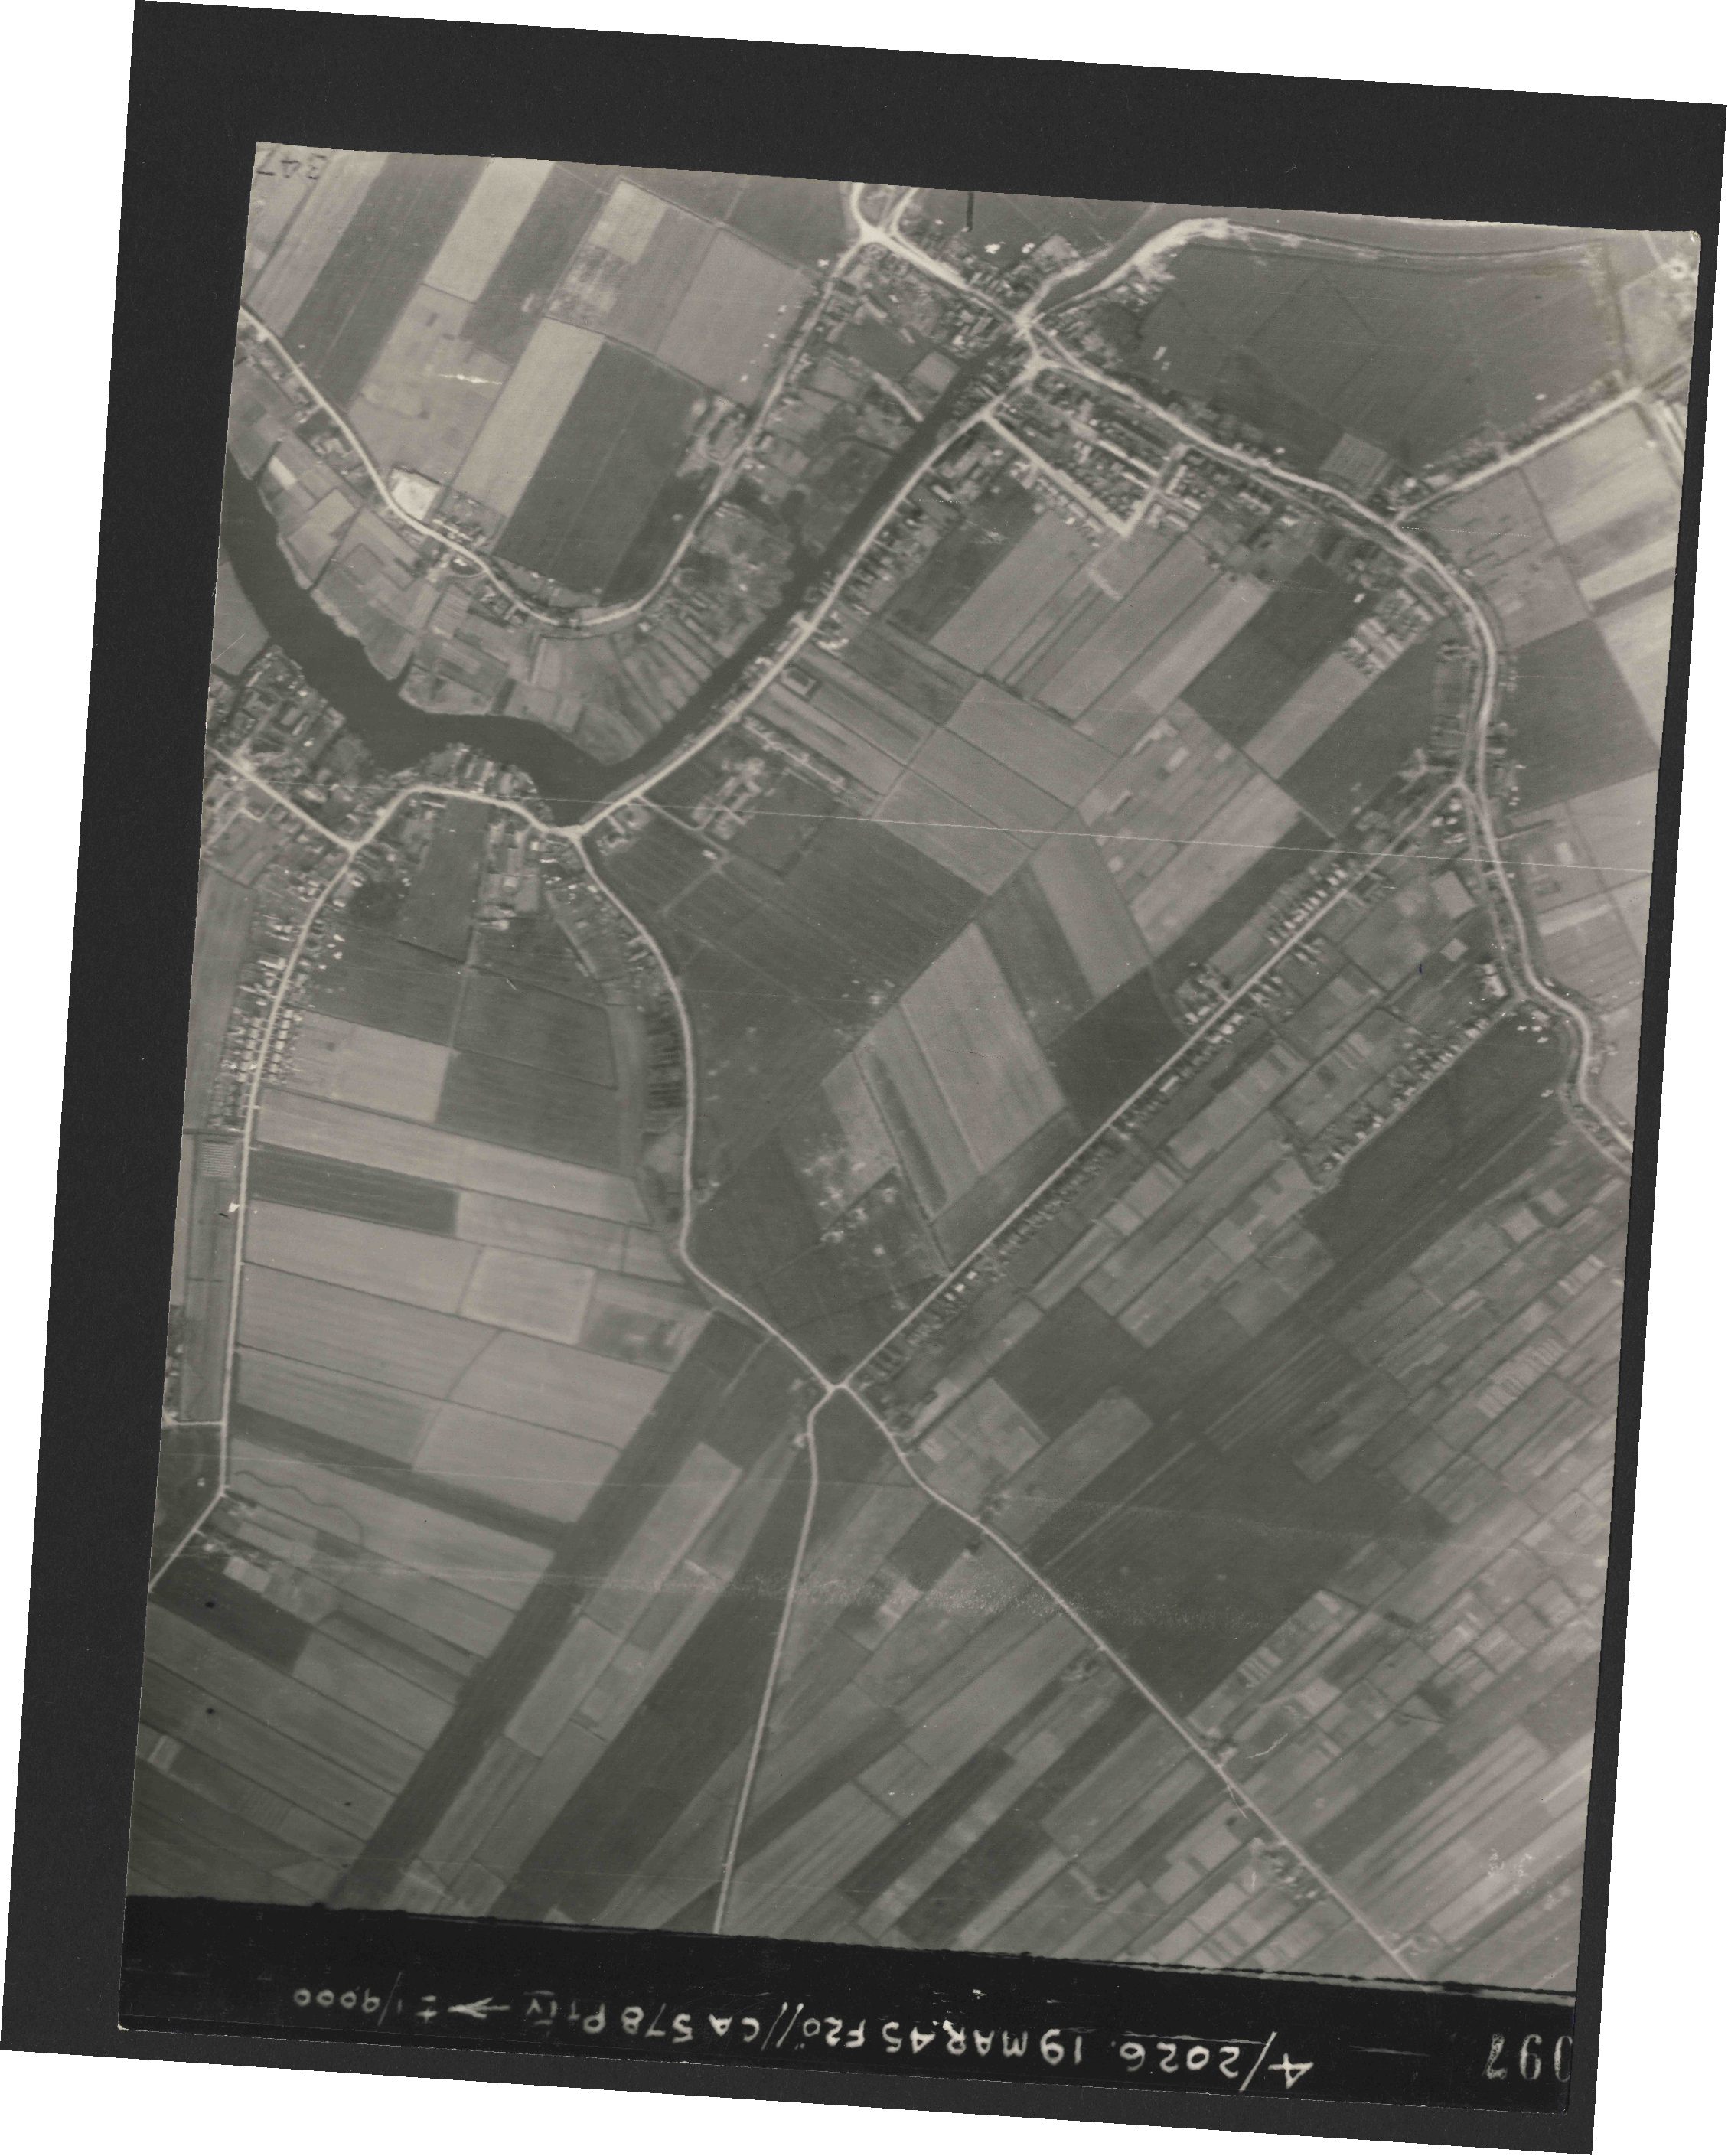 Collection RAF aerial photos 1940-1945 - flight 012, run 03, photo 3097